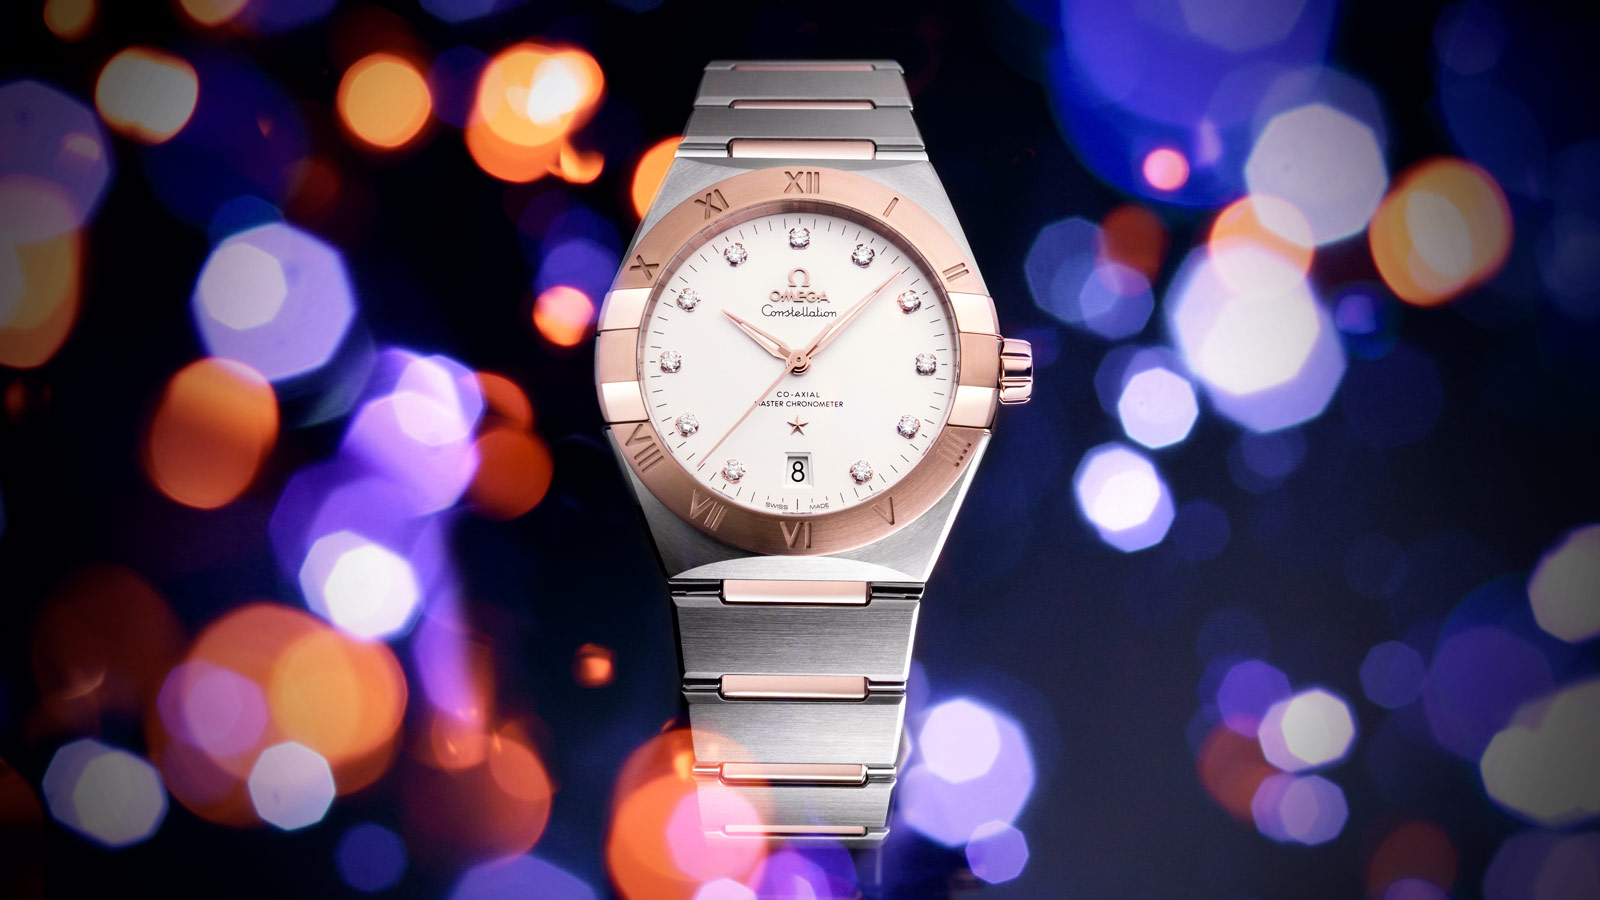 Constellation Constellation Constellation OMEGA Co‑Axial Master Chronometer 39 mm Watch - 131.20.39.20.52.001